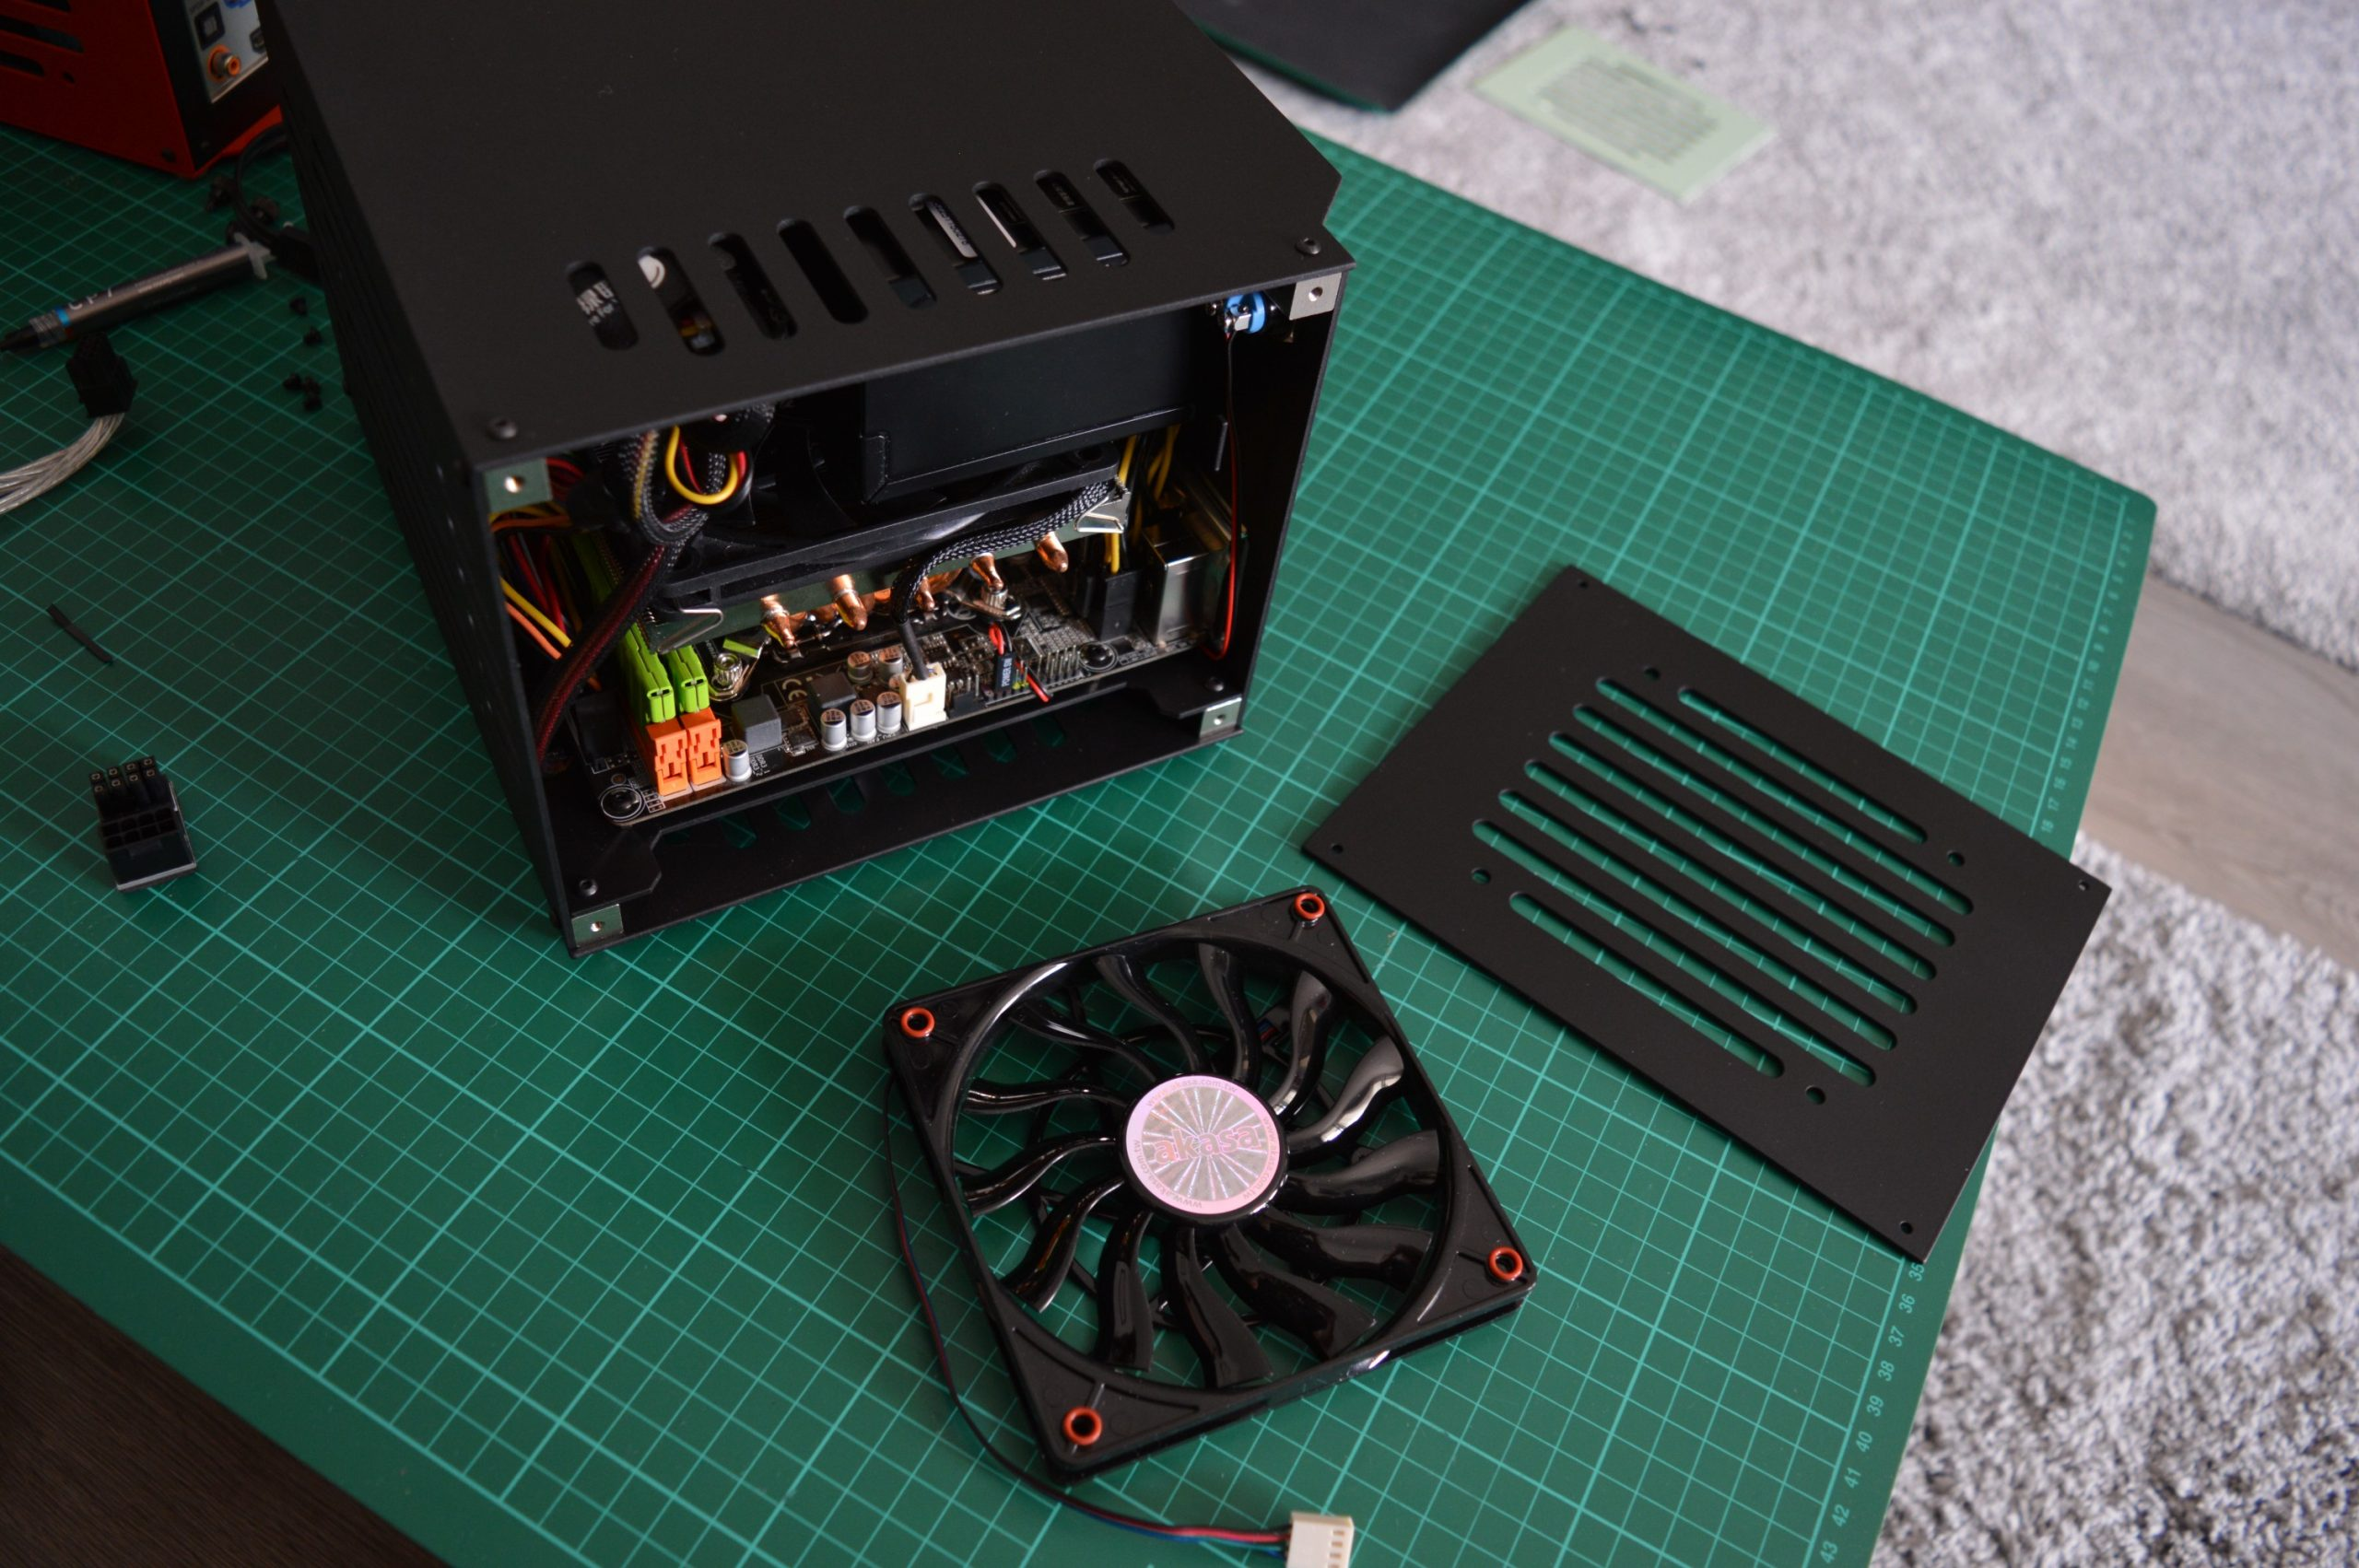 Haswell 34